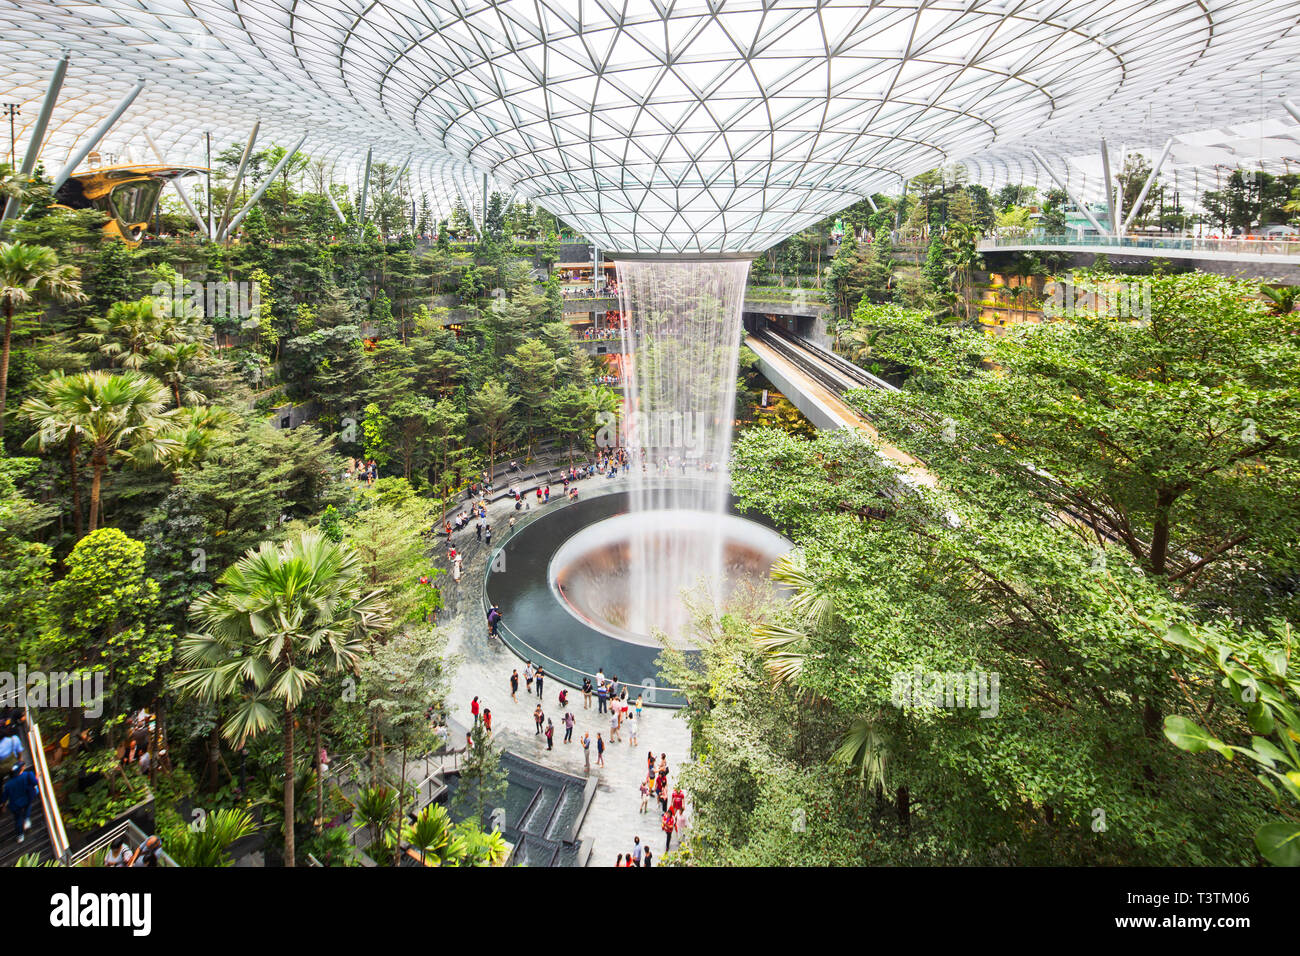 jewel-changi-airport-singapore-T3TM06.jp